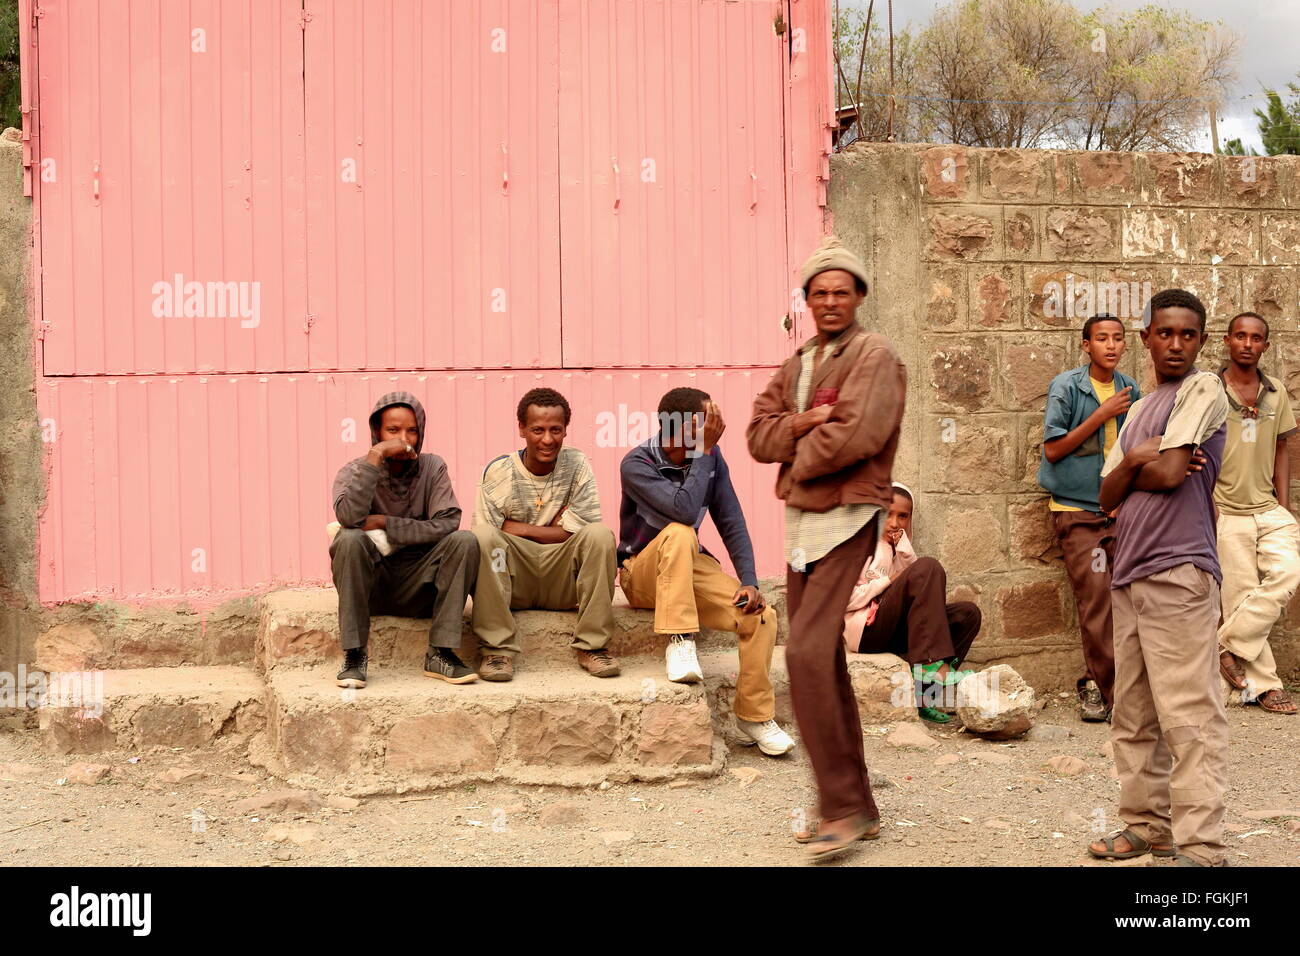 KOMBOLCHA, ETHIOPIA-MARCH 24: Devotees wait outside Bete Gebriel-St.Gabriel church compound for the religious service - Stock Image